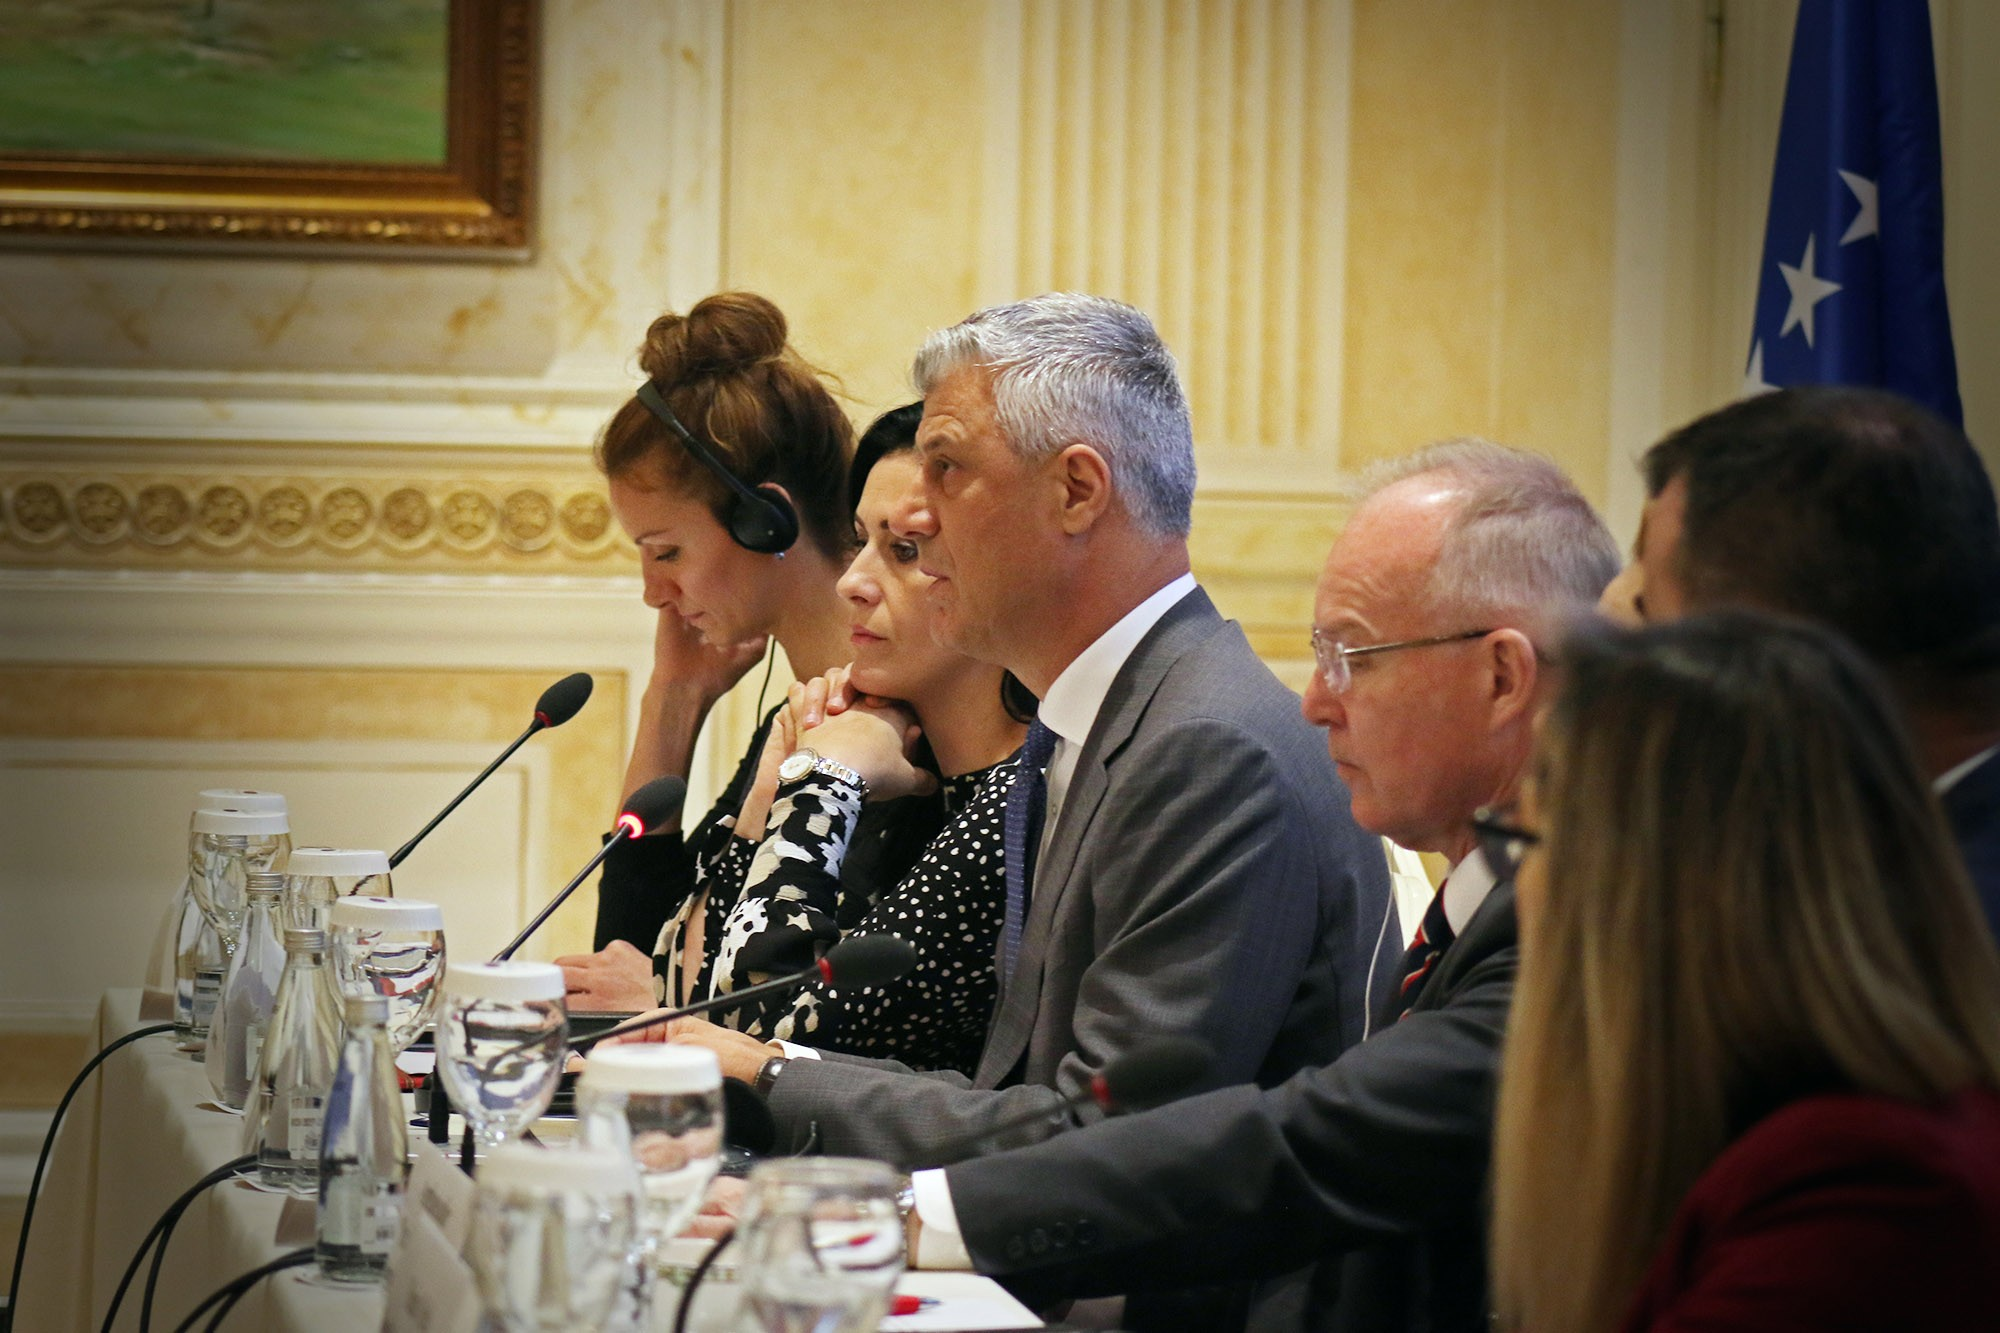 President Thaçi: Emancipation of women in Kosovo constitutes emancipation of the whole society